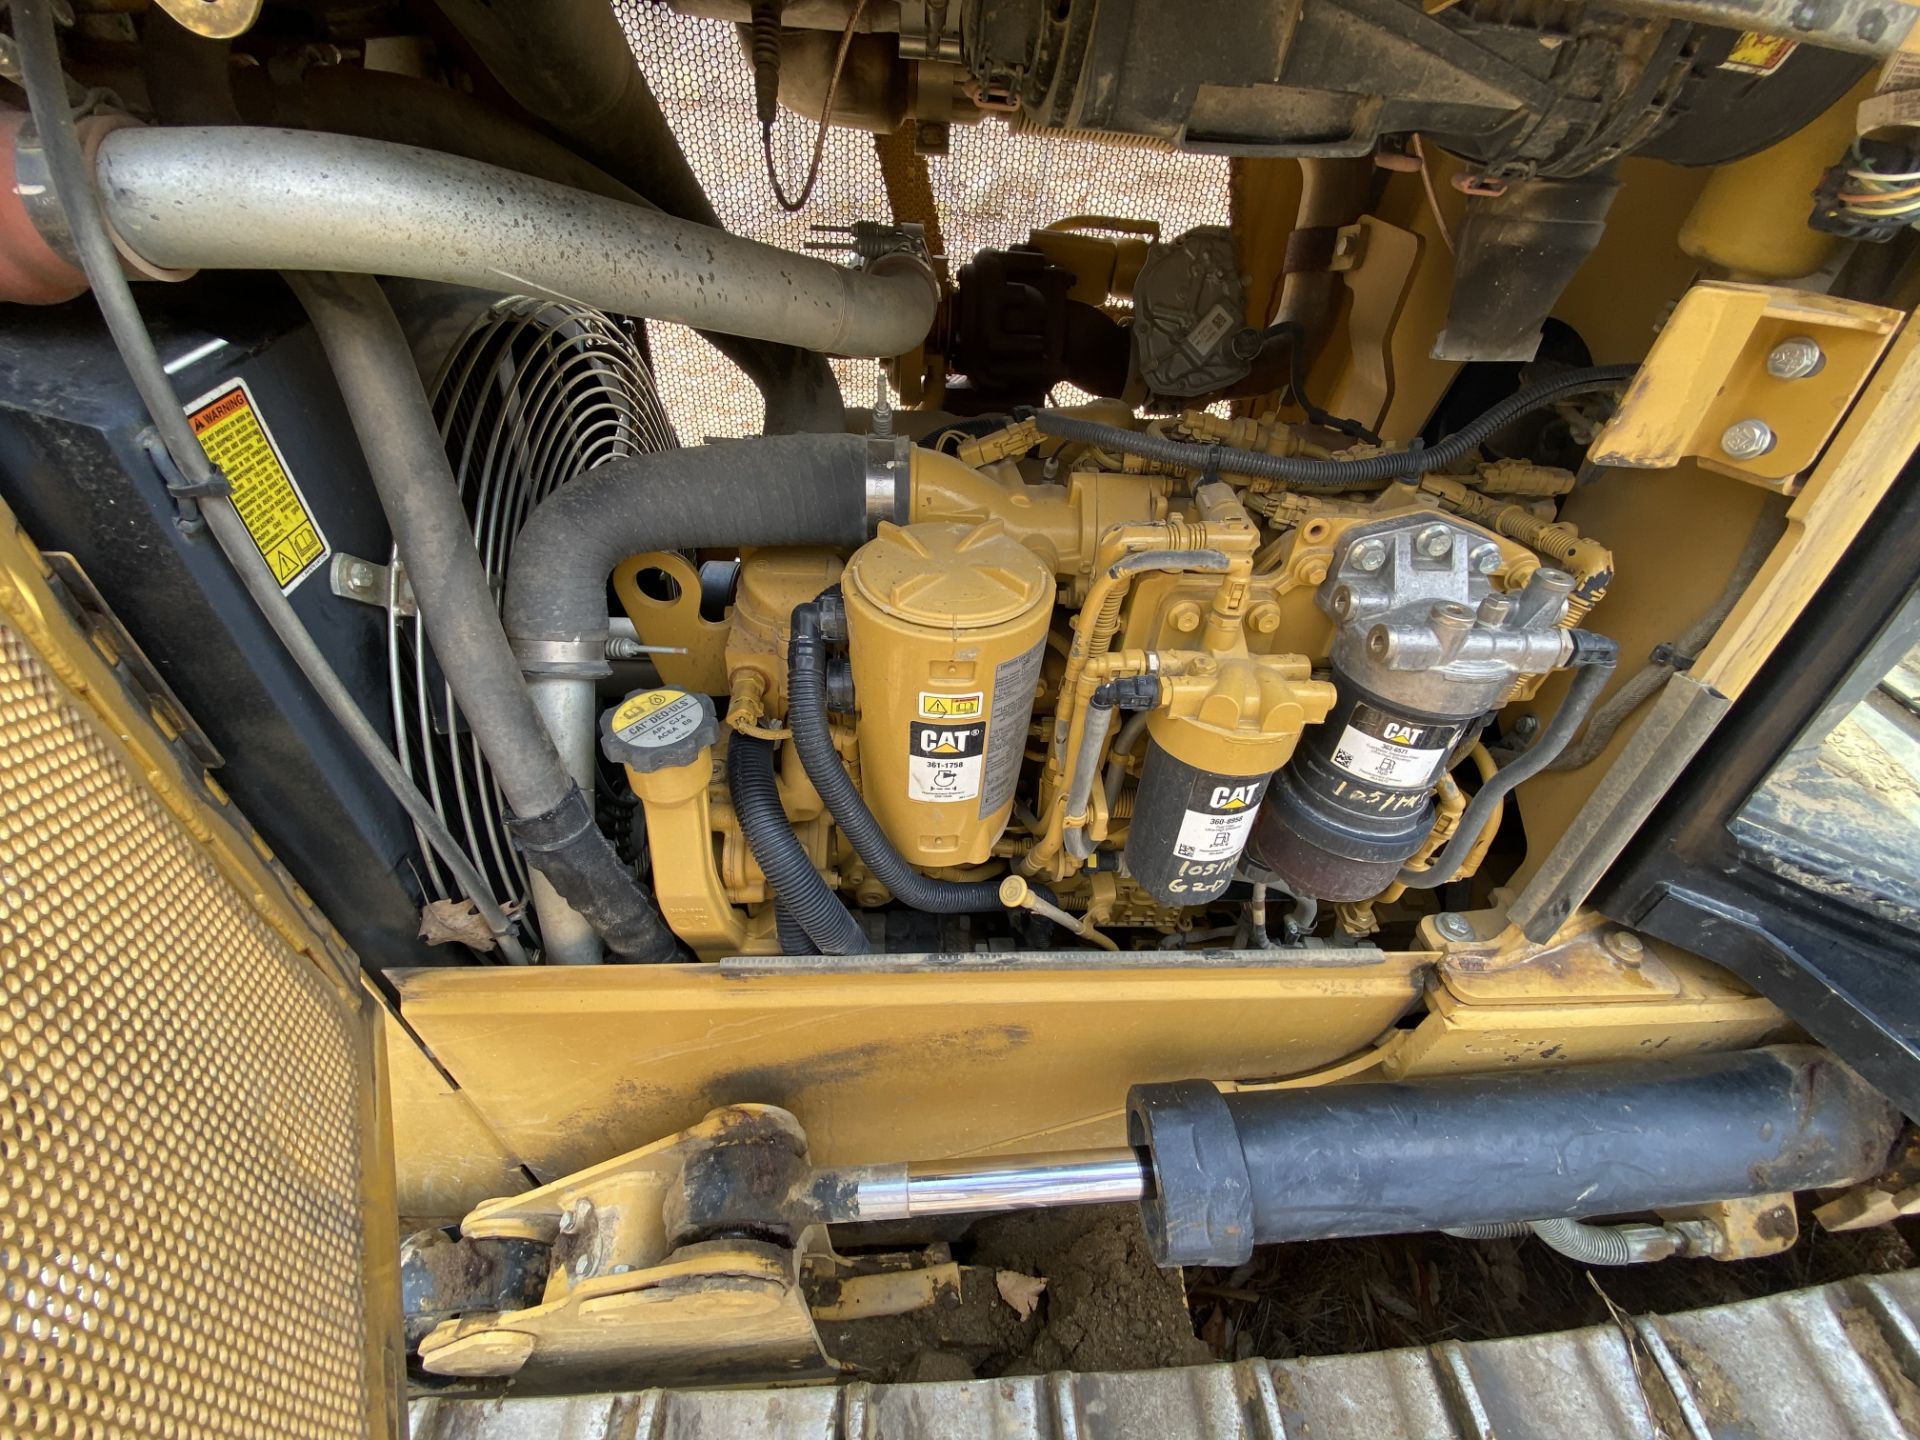 2014 Caterpillar Track Dozer #D3K2XL w/ 8' Plow, CAT 4.4 ACE RT Diesel Engine, HRS: 1926, PIN#: - Image 9 of 9